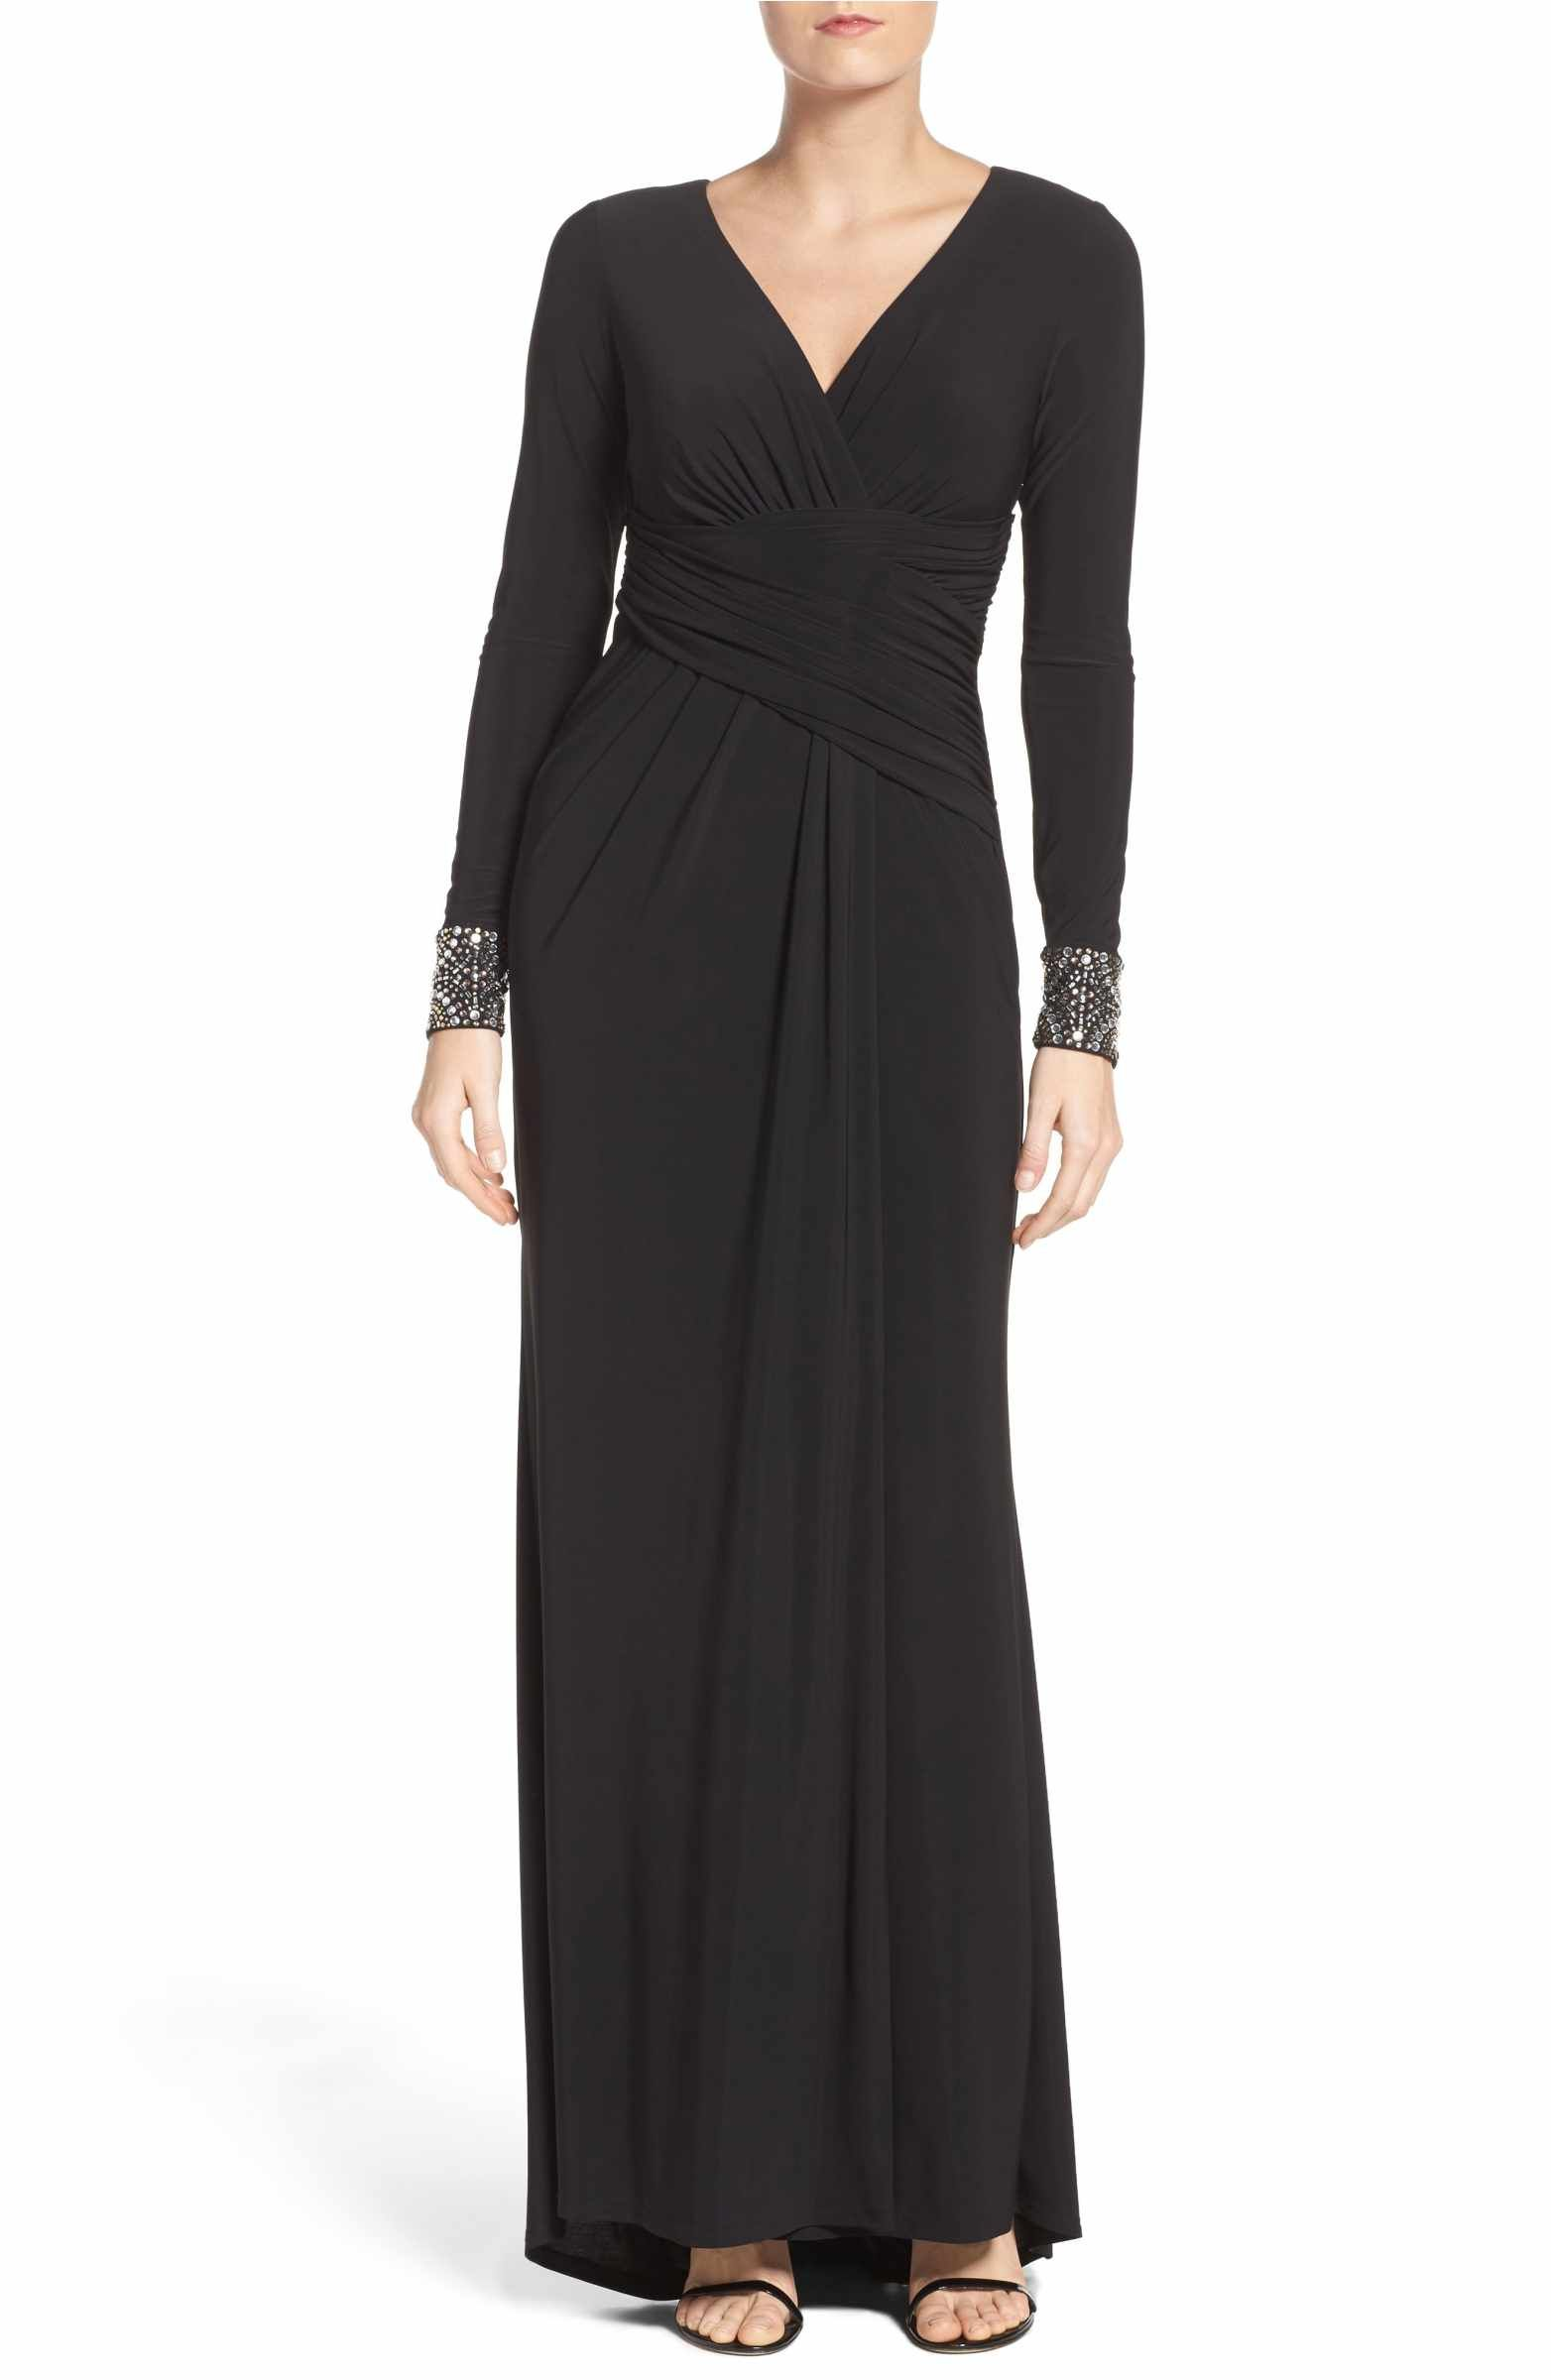 Main image vince camuto embellished sleeve jersey gown nordstrom